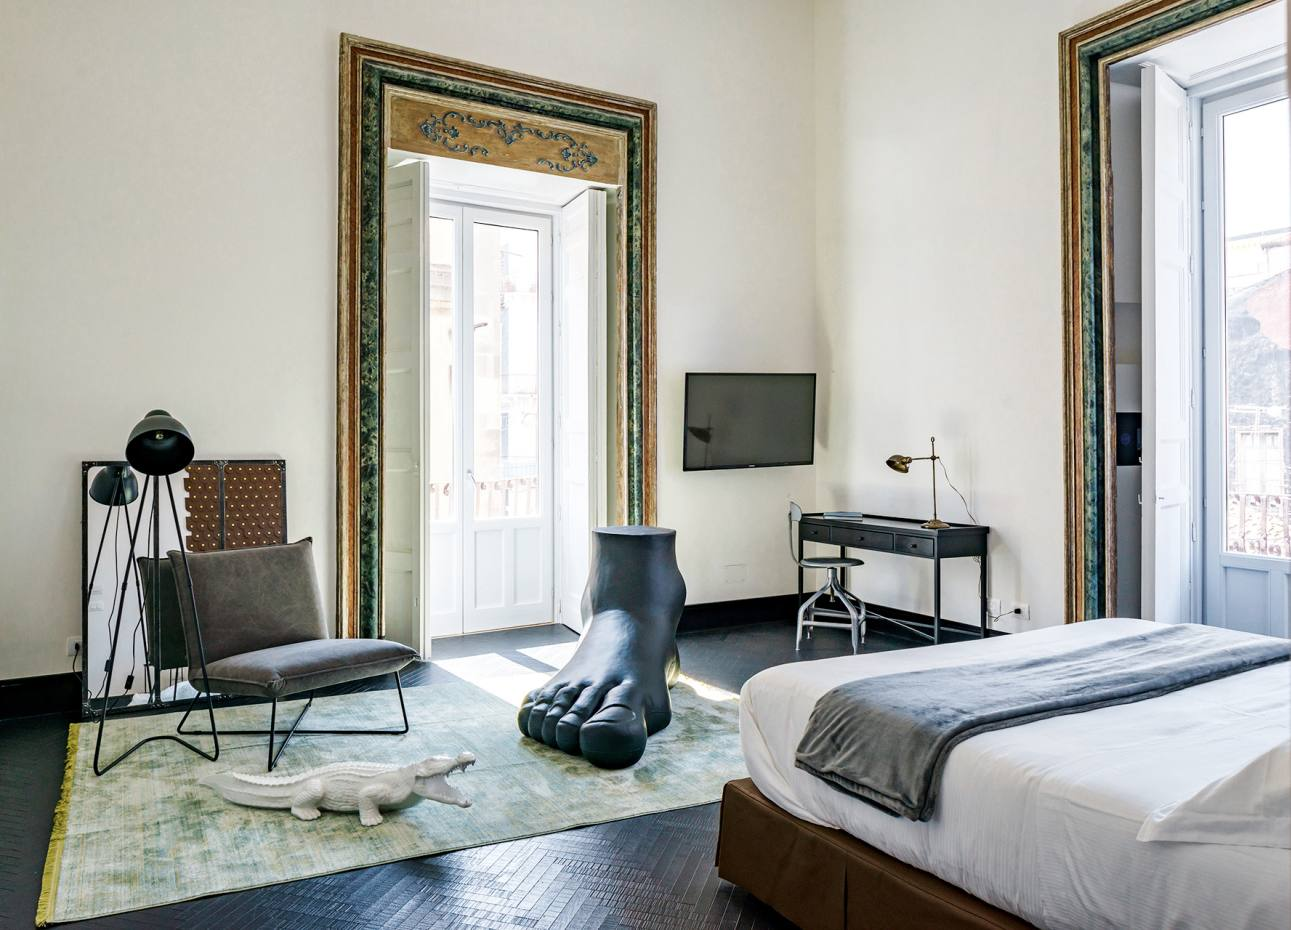 The rooms at Asmundo di Gisira, in Catania, each boast bespoke details, such as original artworks